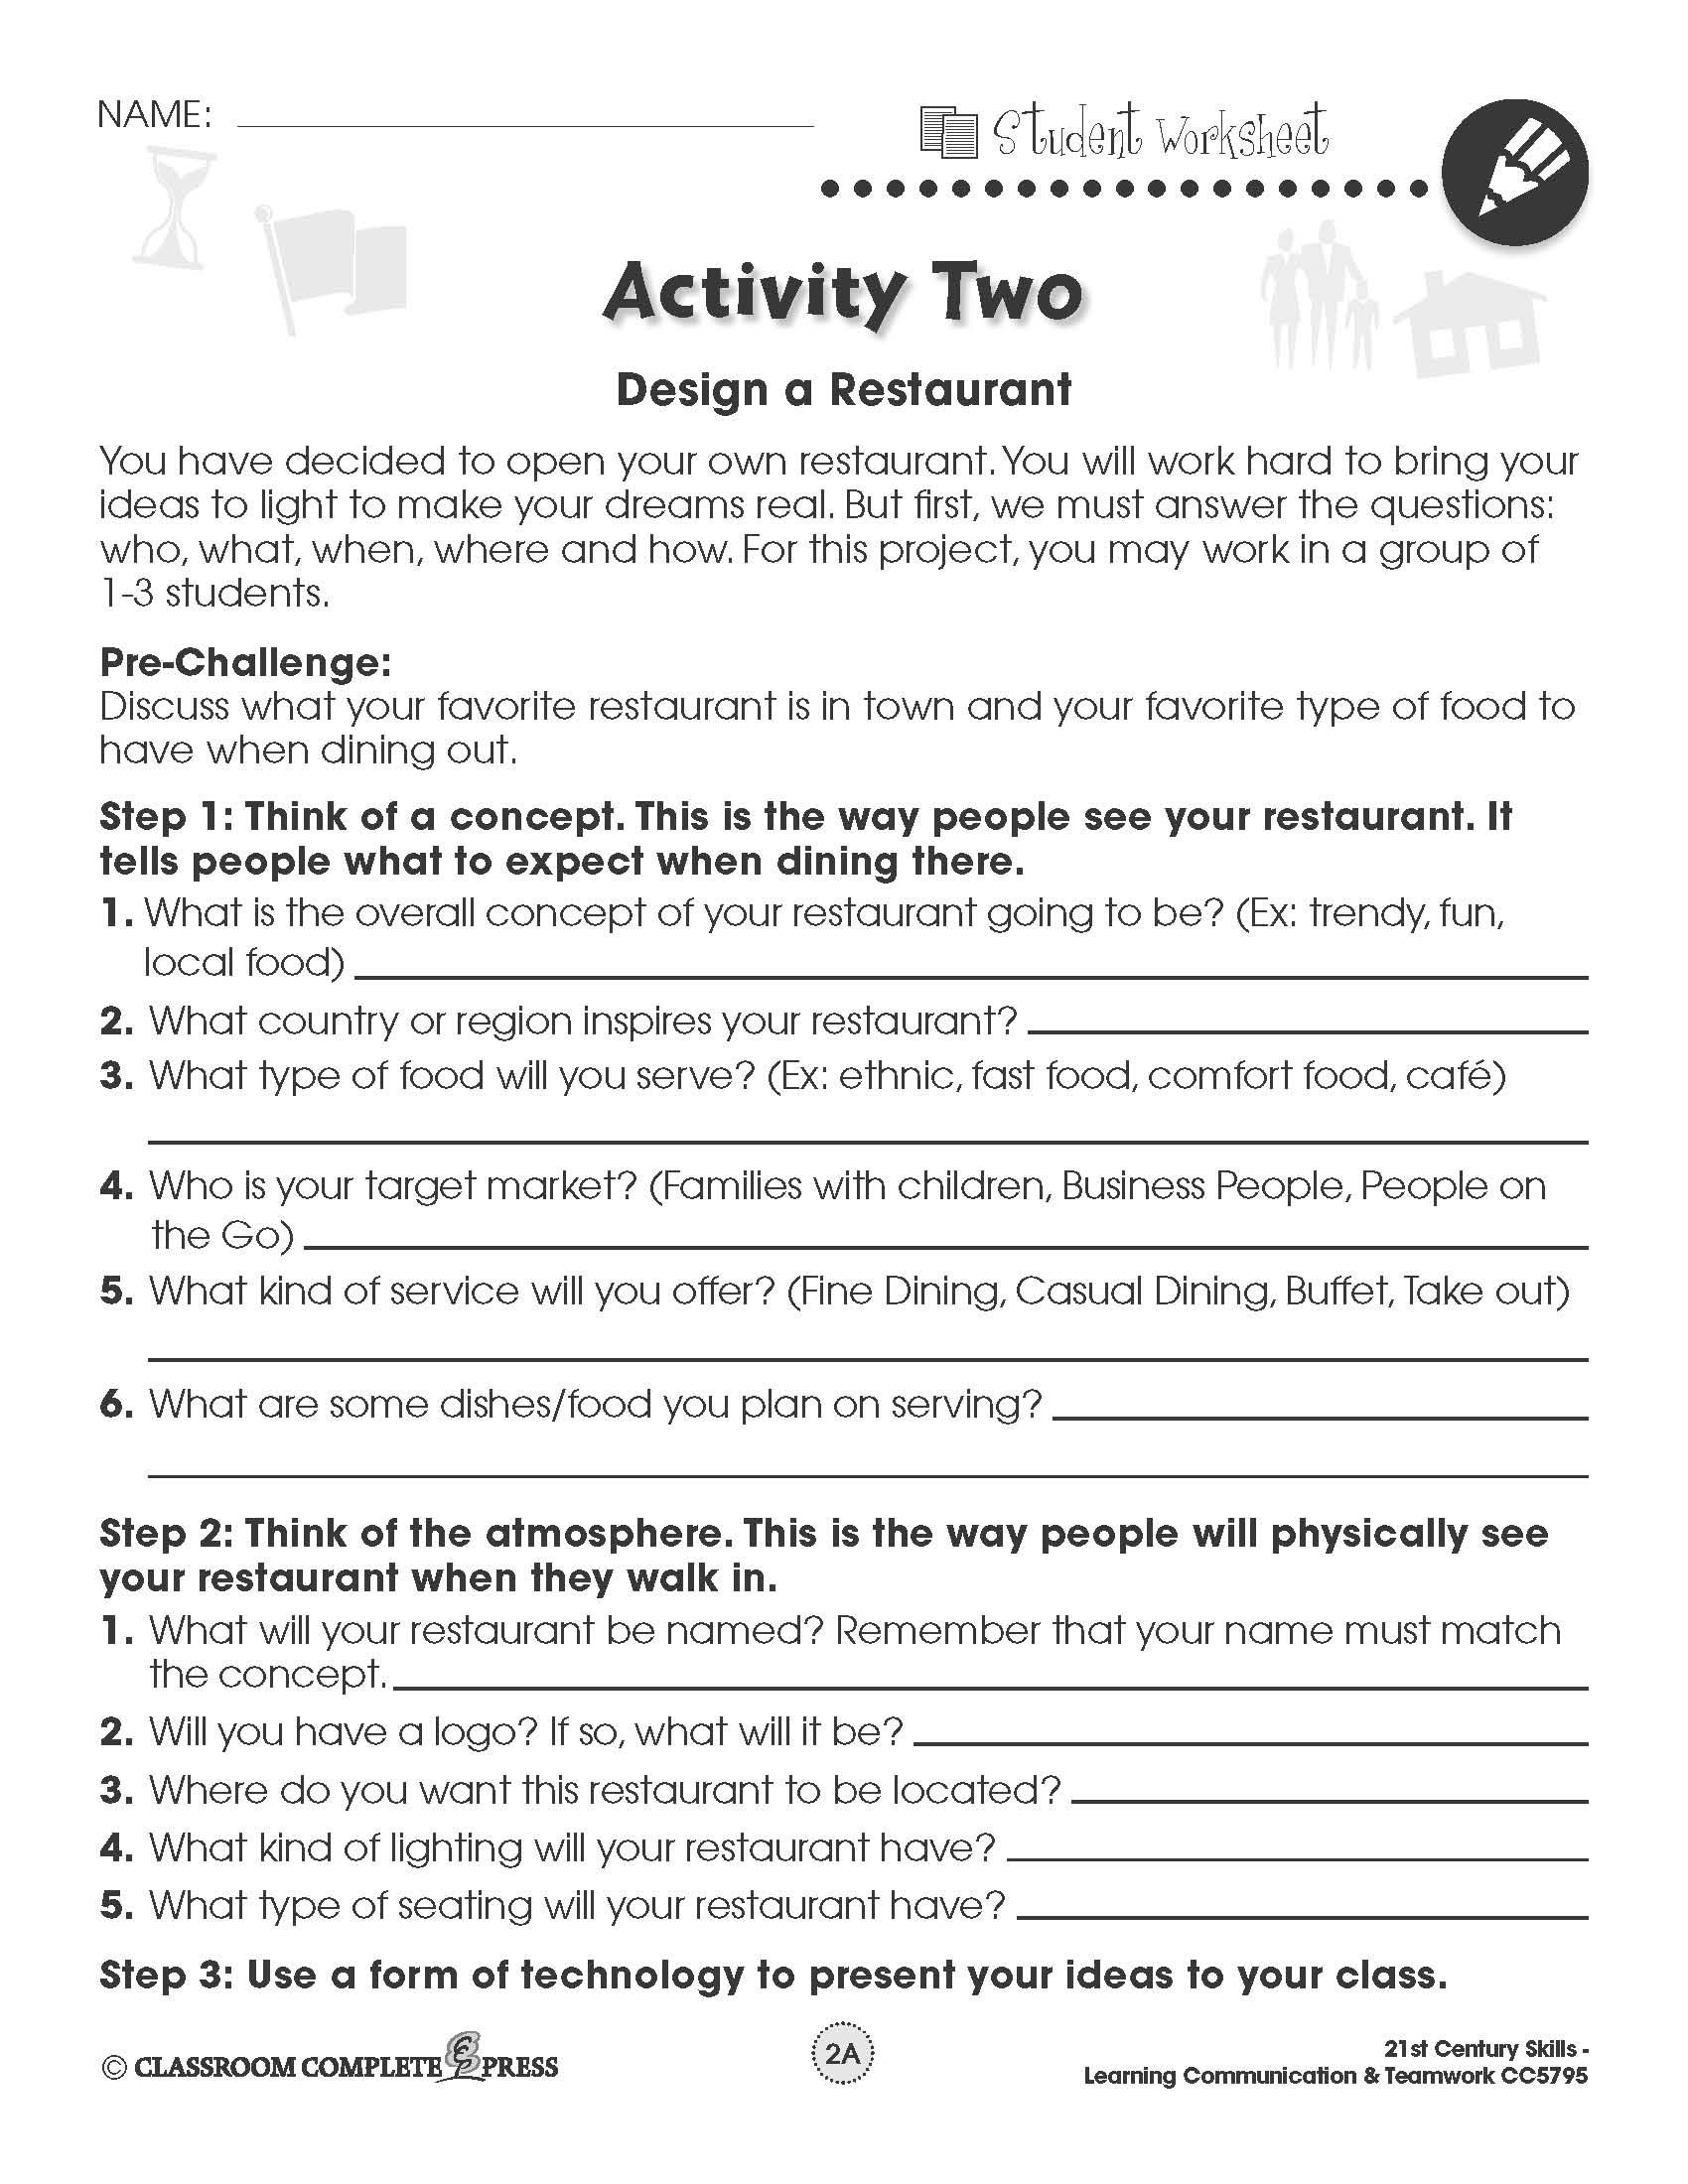 Design Your Own Restaurant In This Free Activity From Ccp